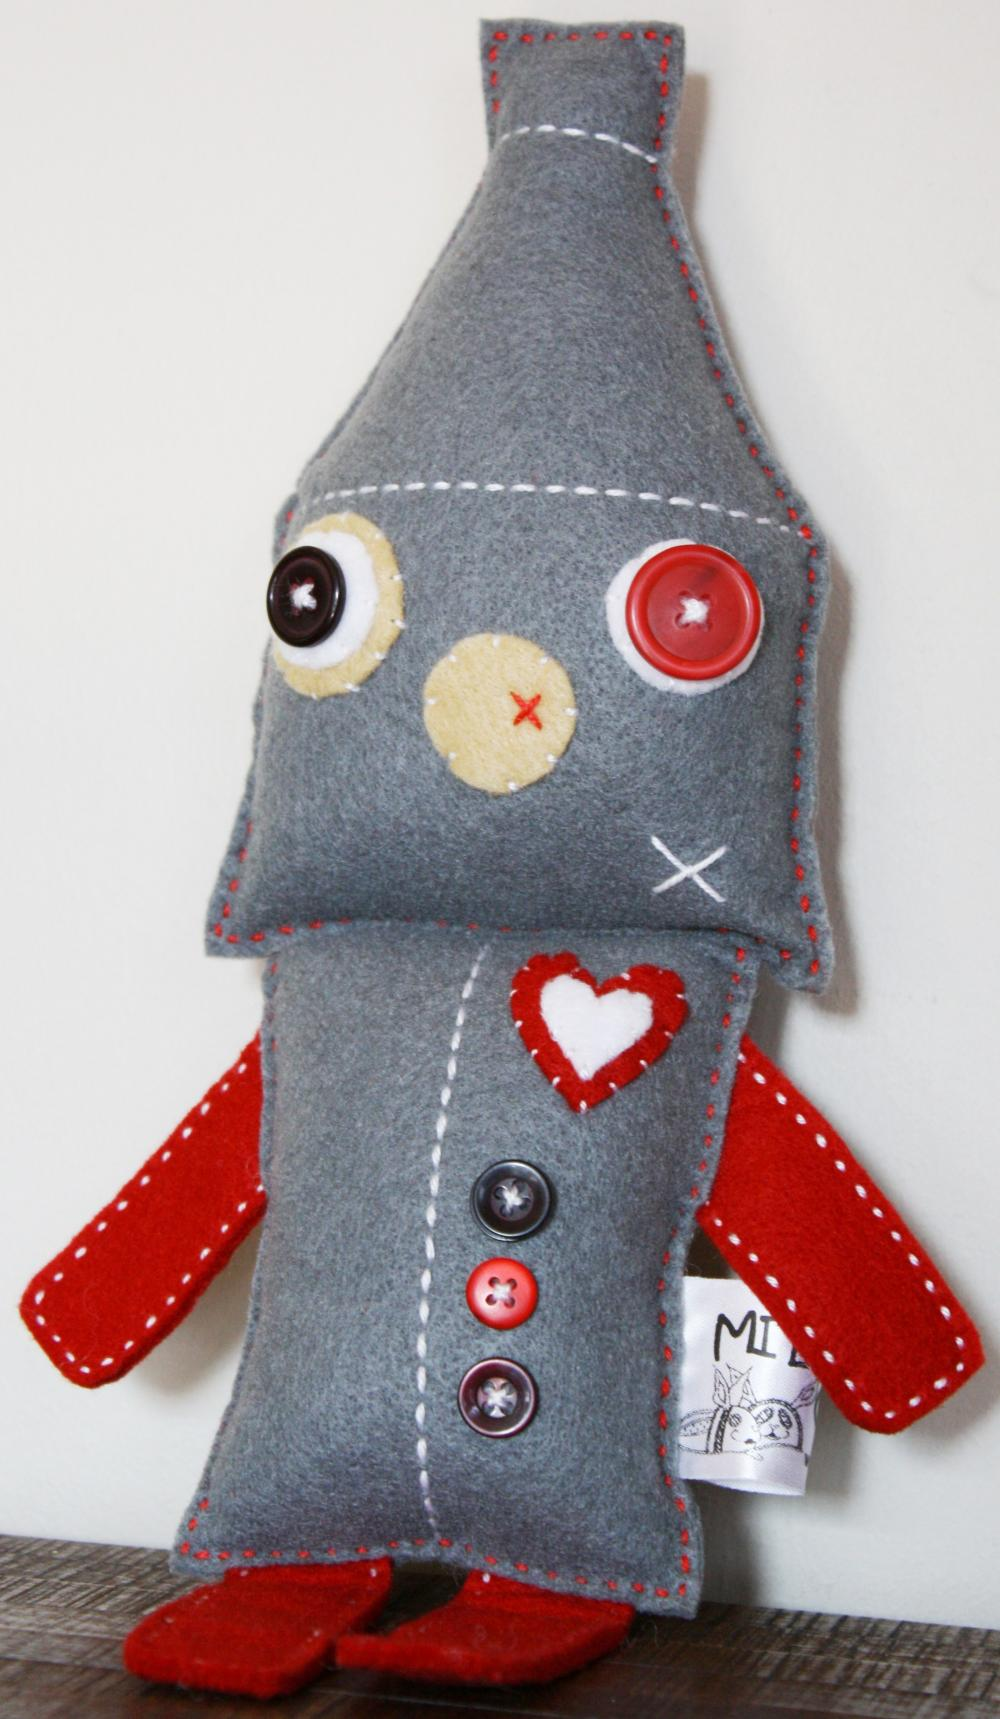 BOO!beloobie Tinker the Tinman (Robot) in Grey, Red, white and cream with button and stitch detail